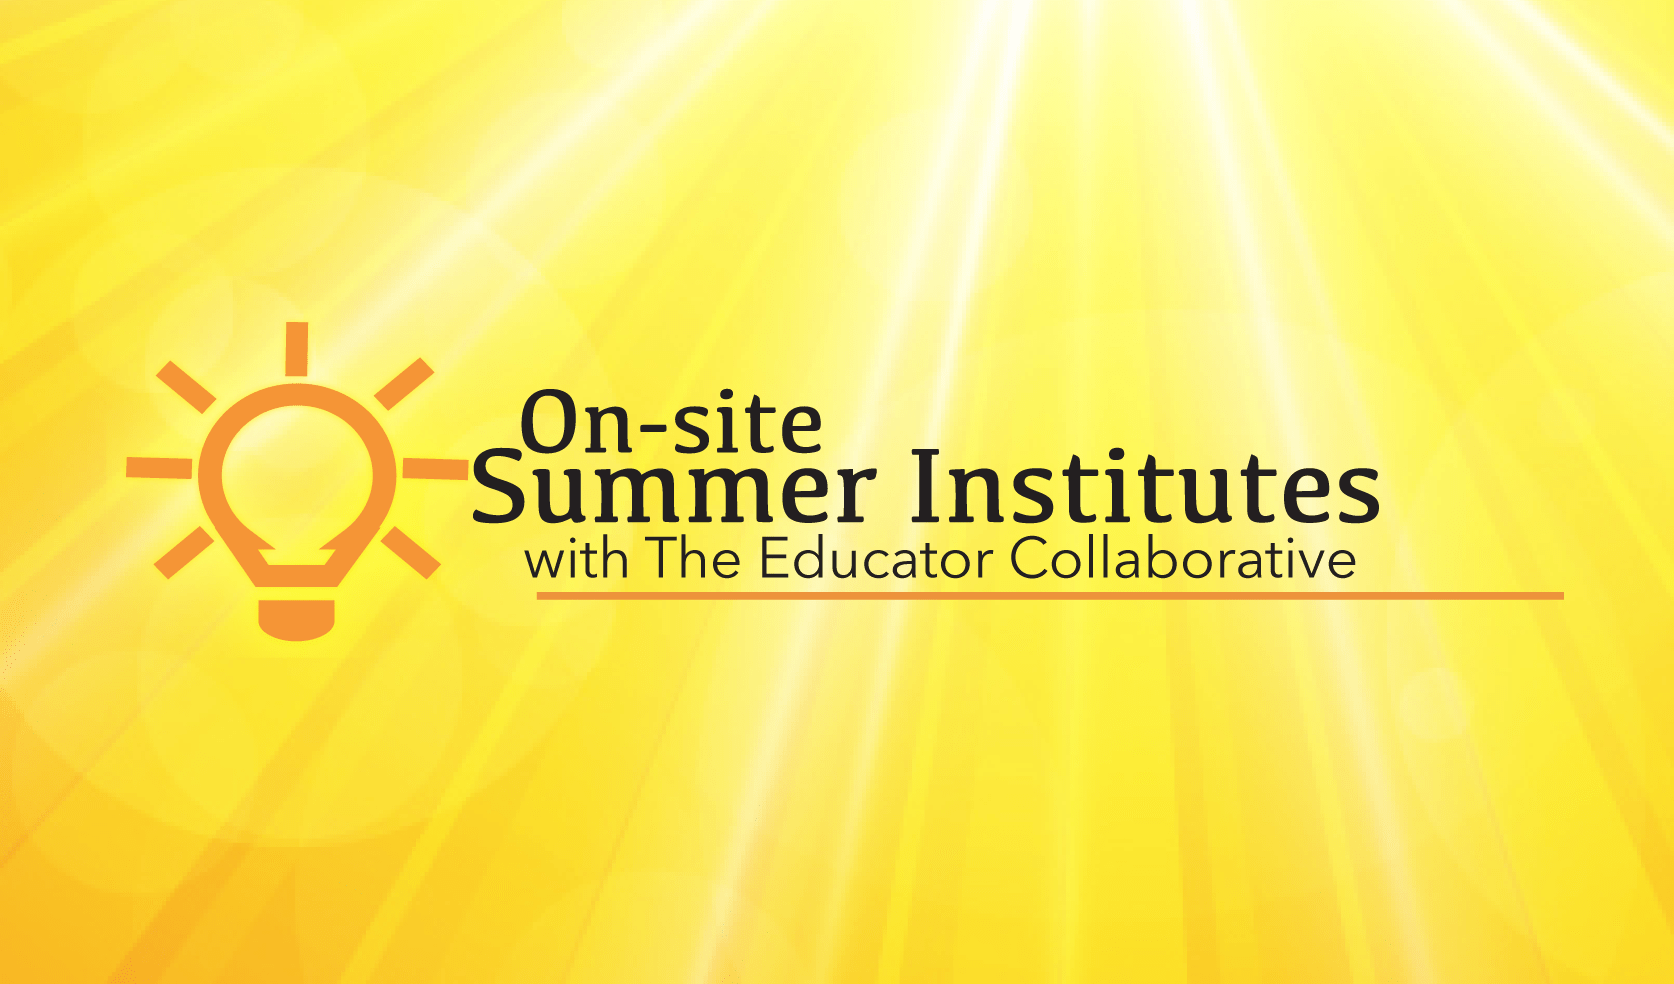 Onsite Summer Institutes